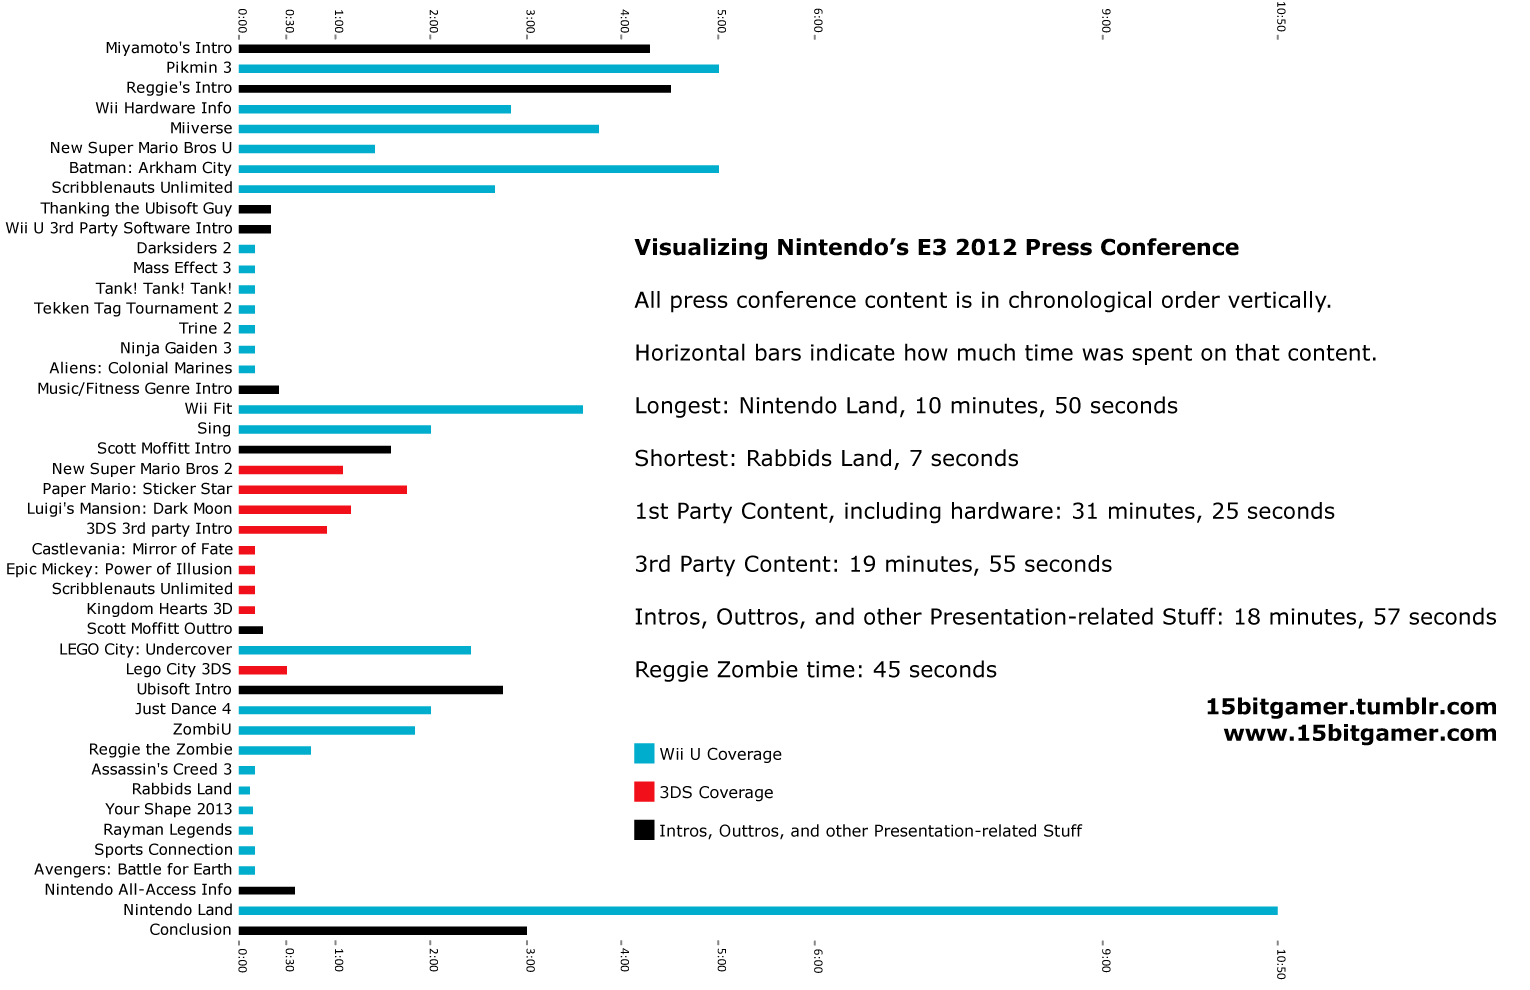 Nintendo's E3 2012 press conference – time spent on each game